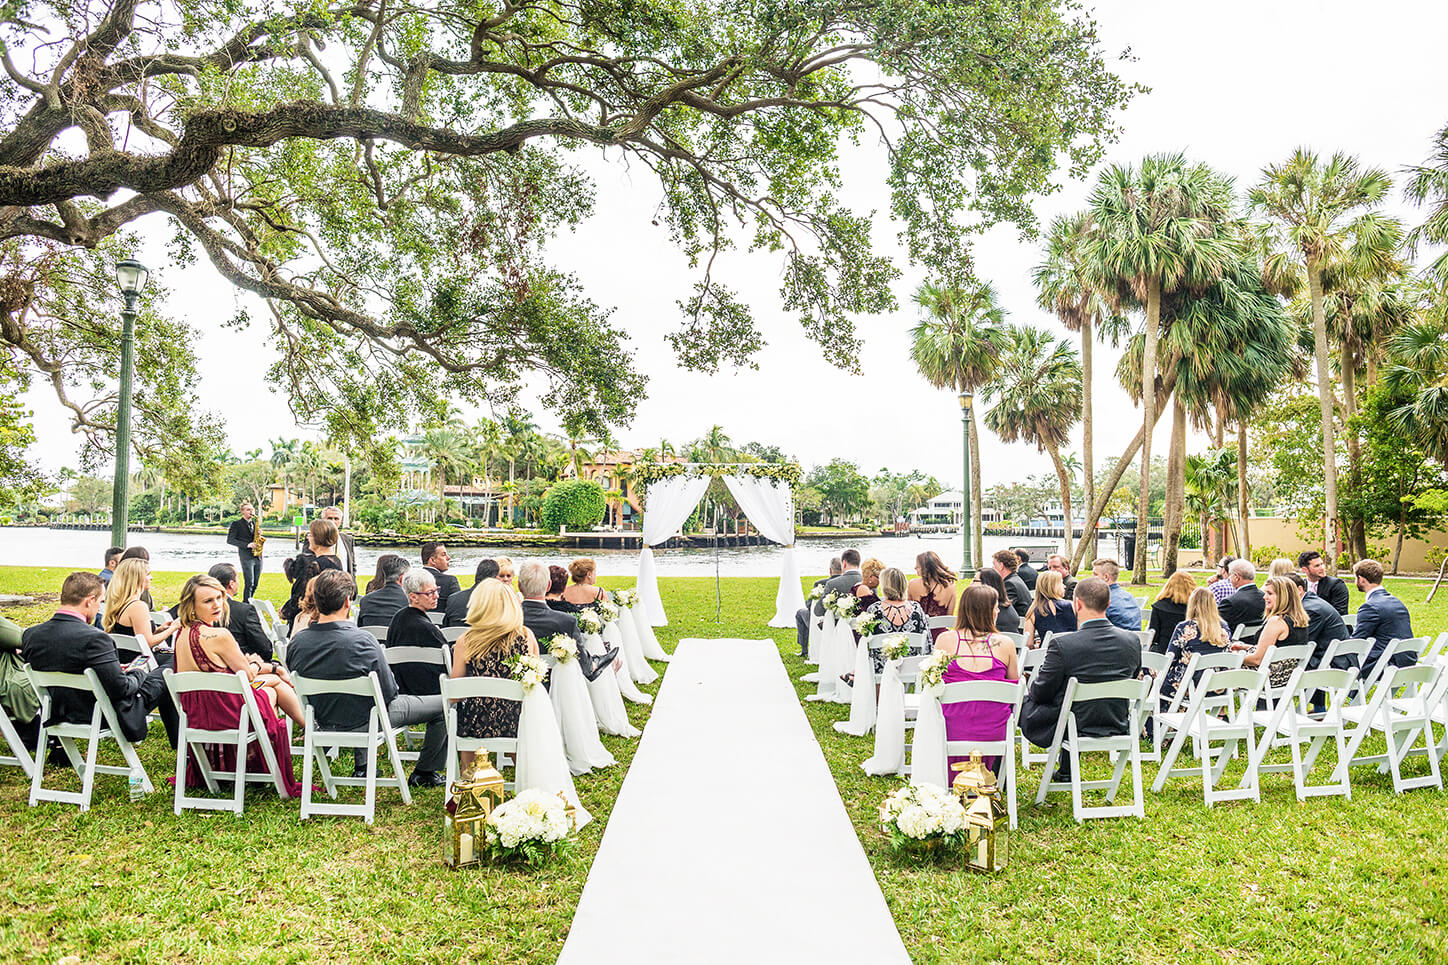 Featured photo of wedding ceremony for wedding venue post by White House Wedding Photography